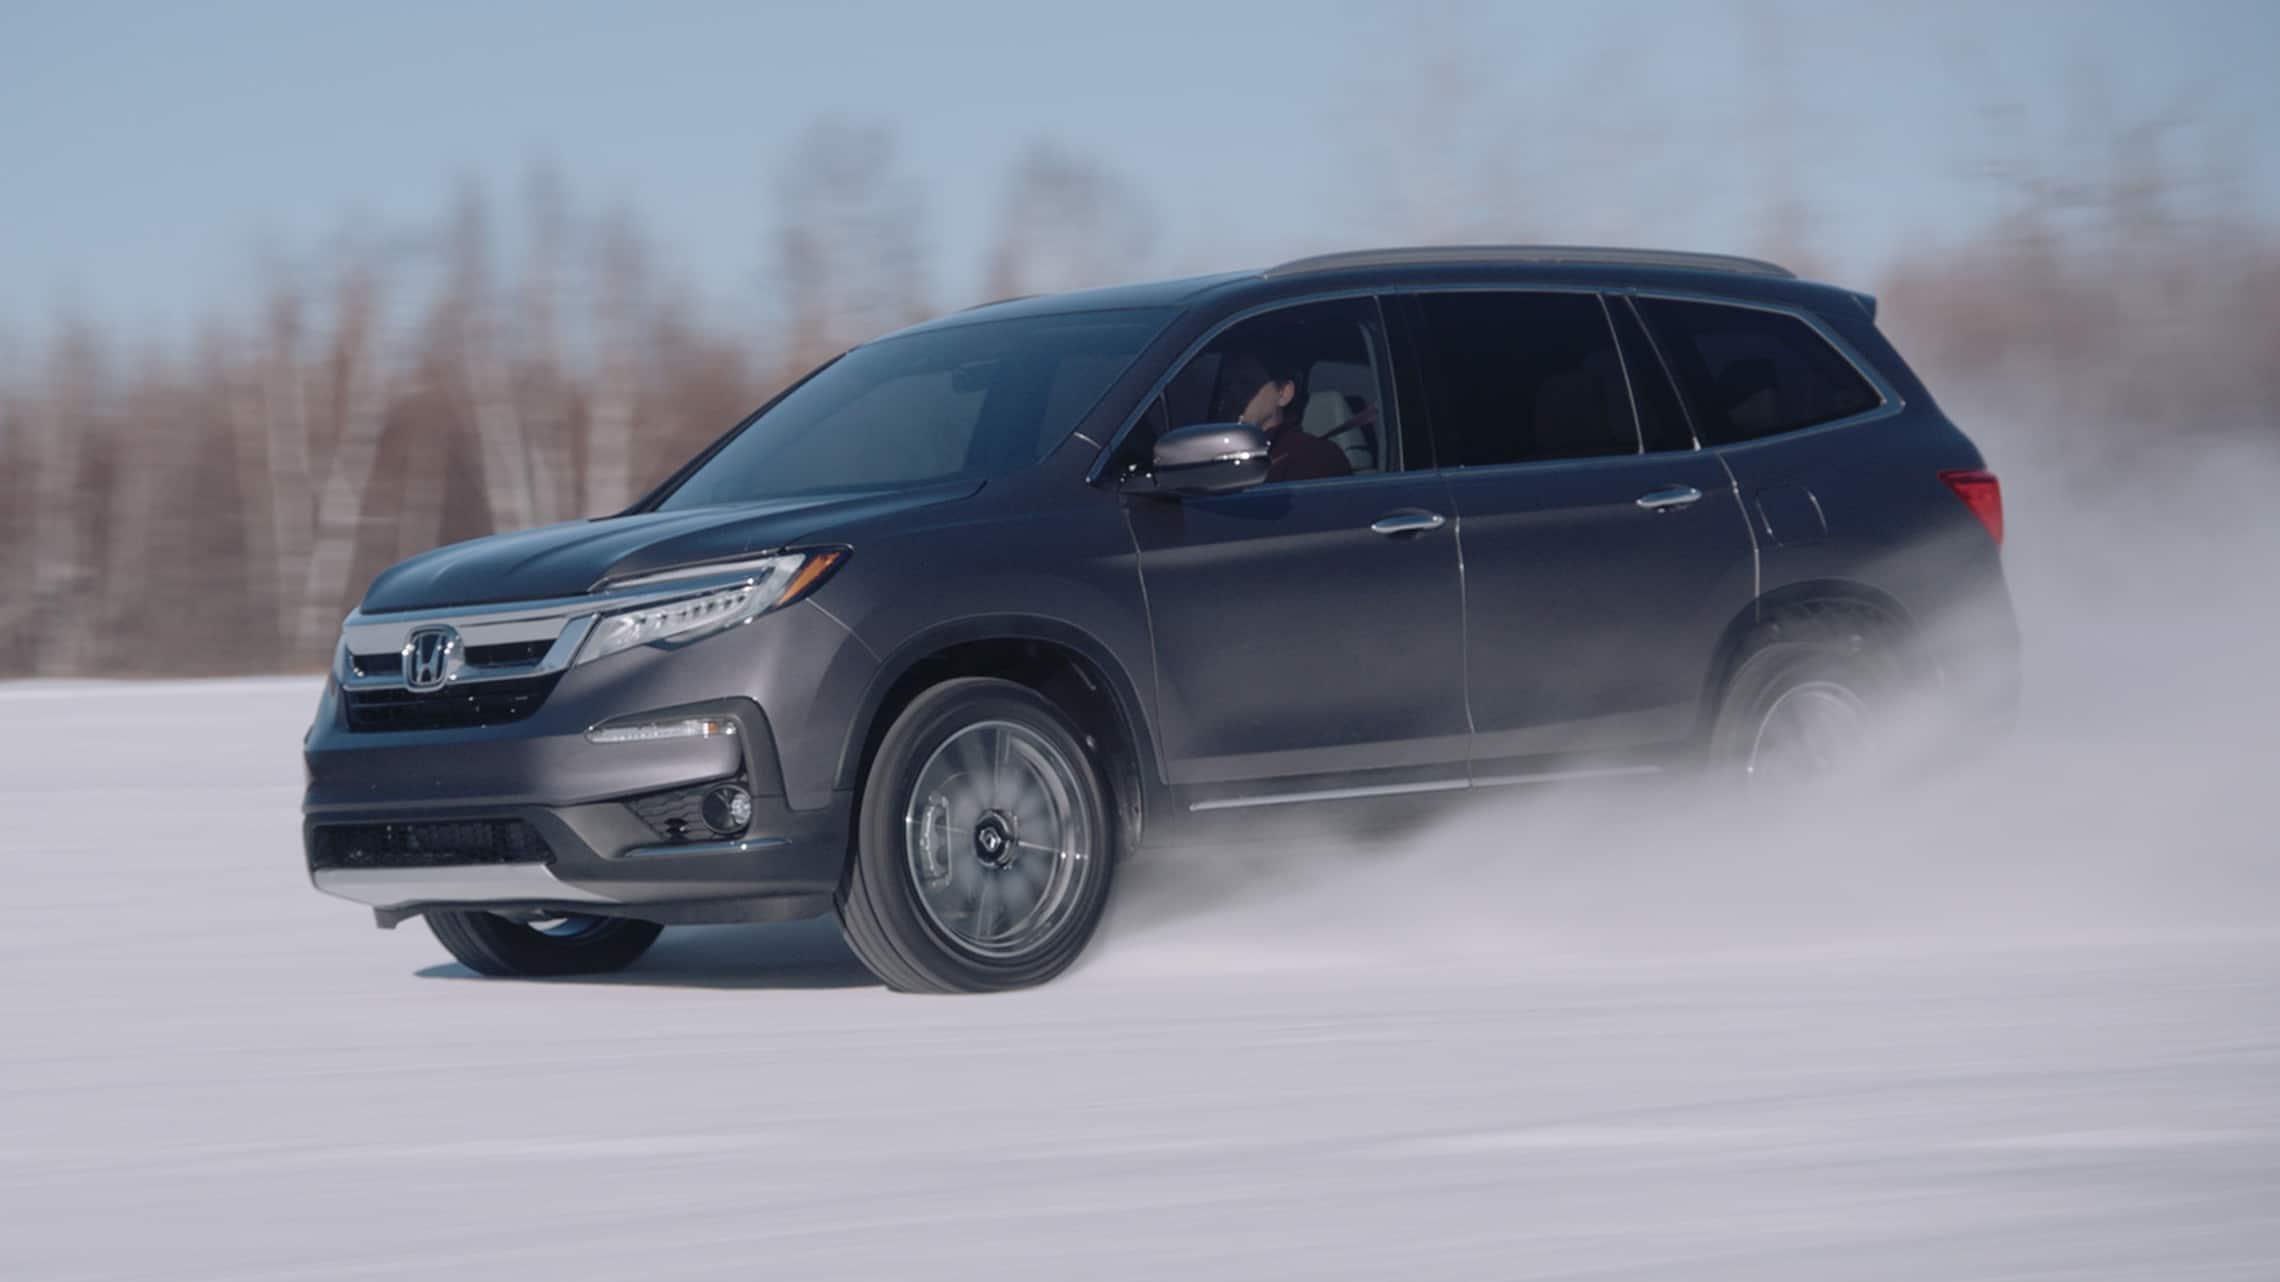 View of 2020 Honda Pilot Elite demonstrating capability with a snowy road environment.